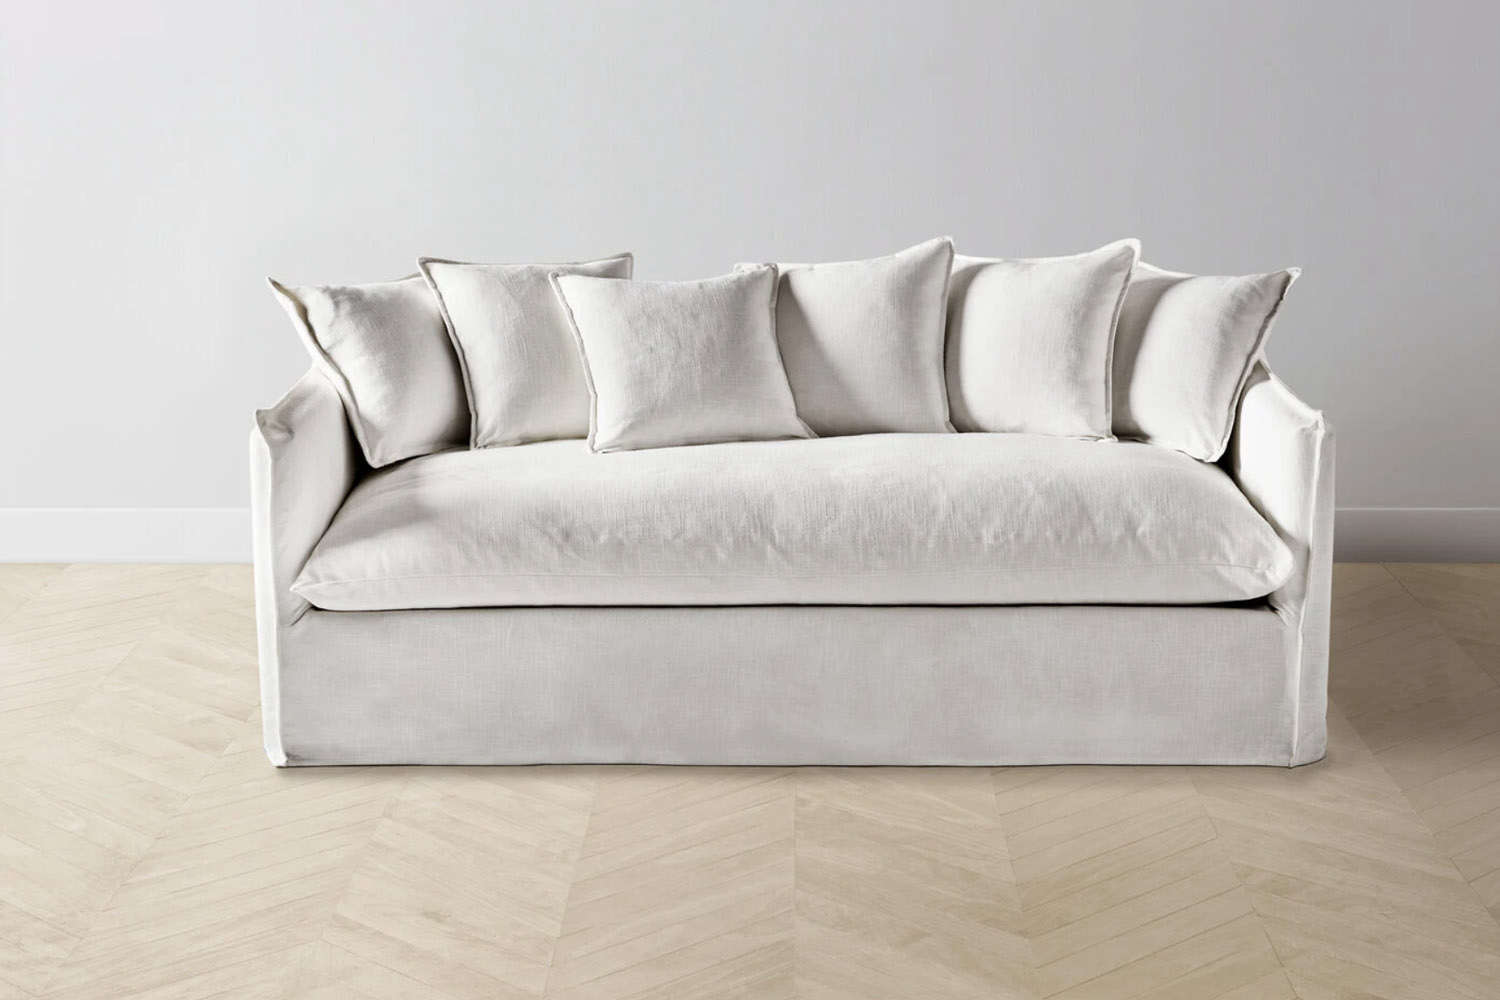 The Dune Sofa from start-up Maiden Home is $